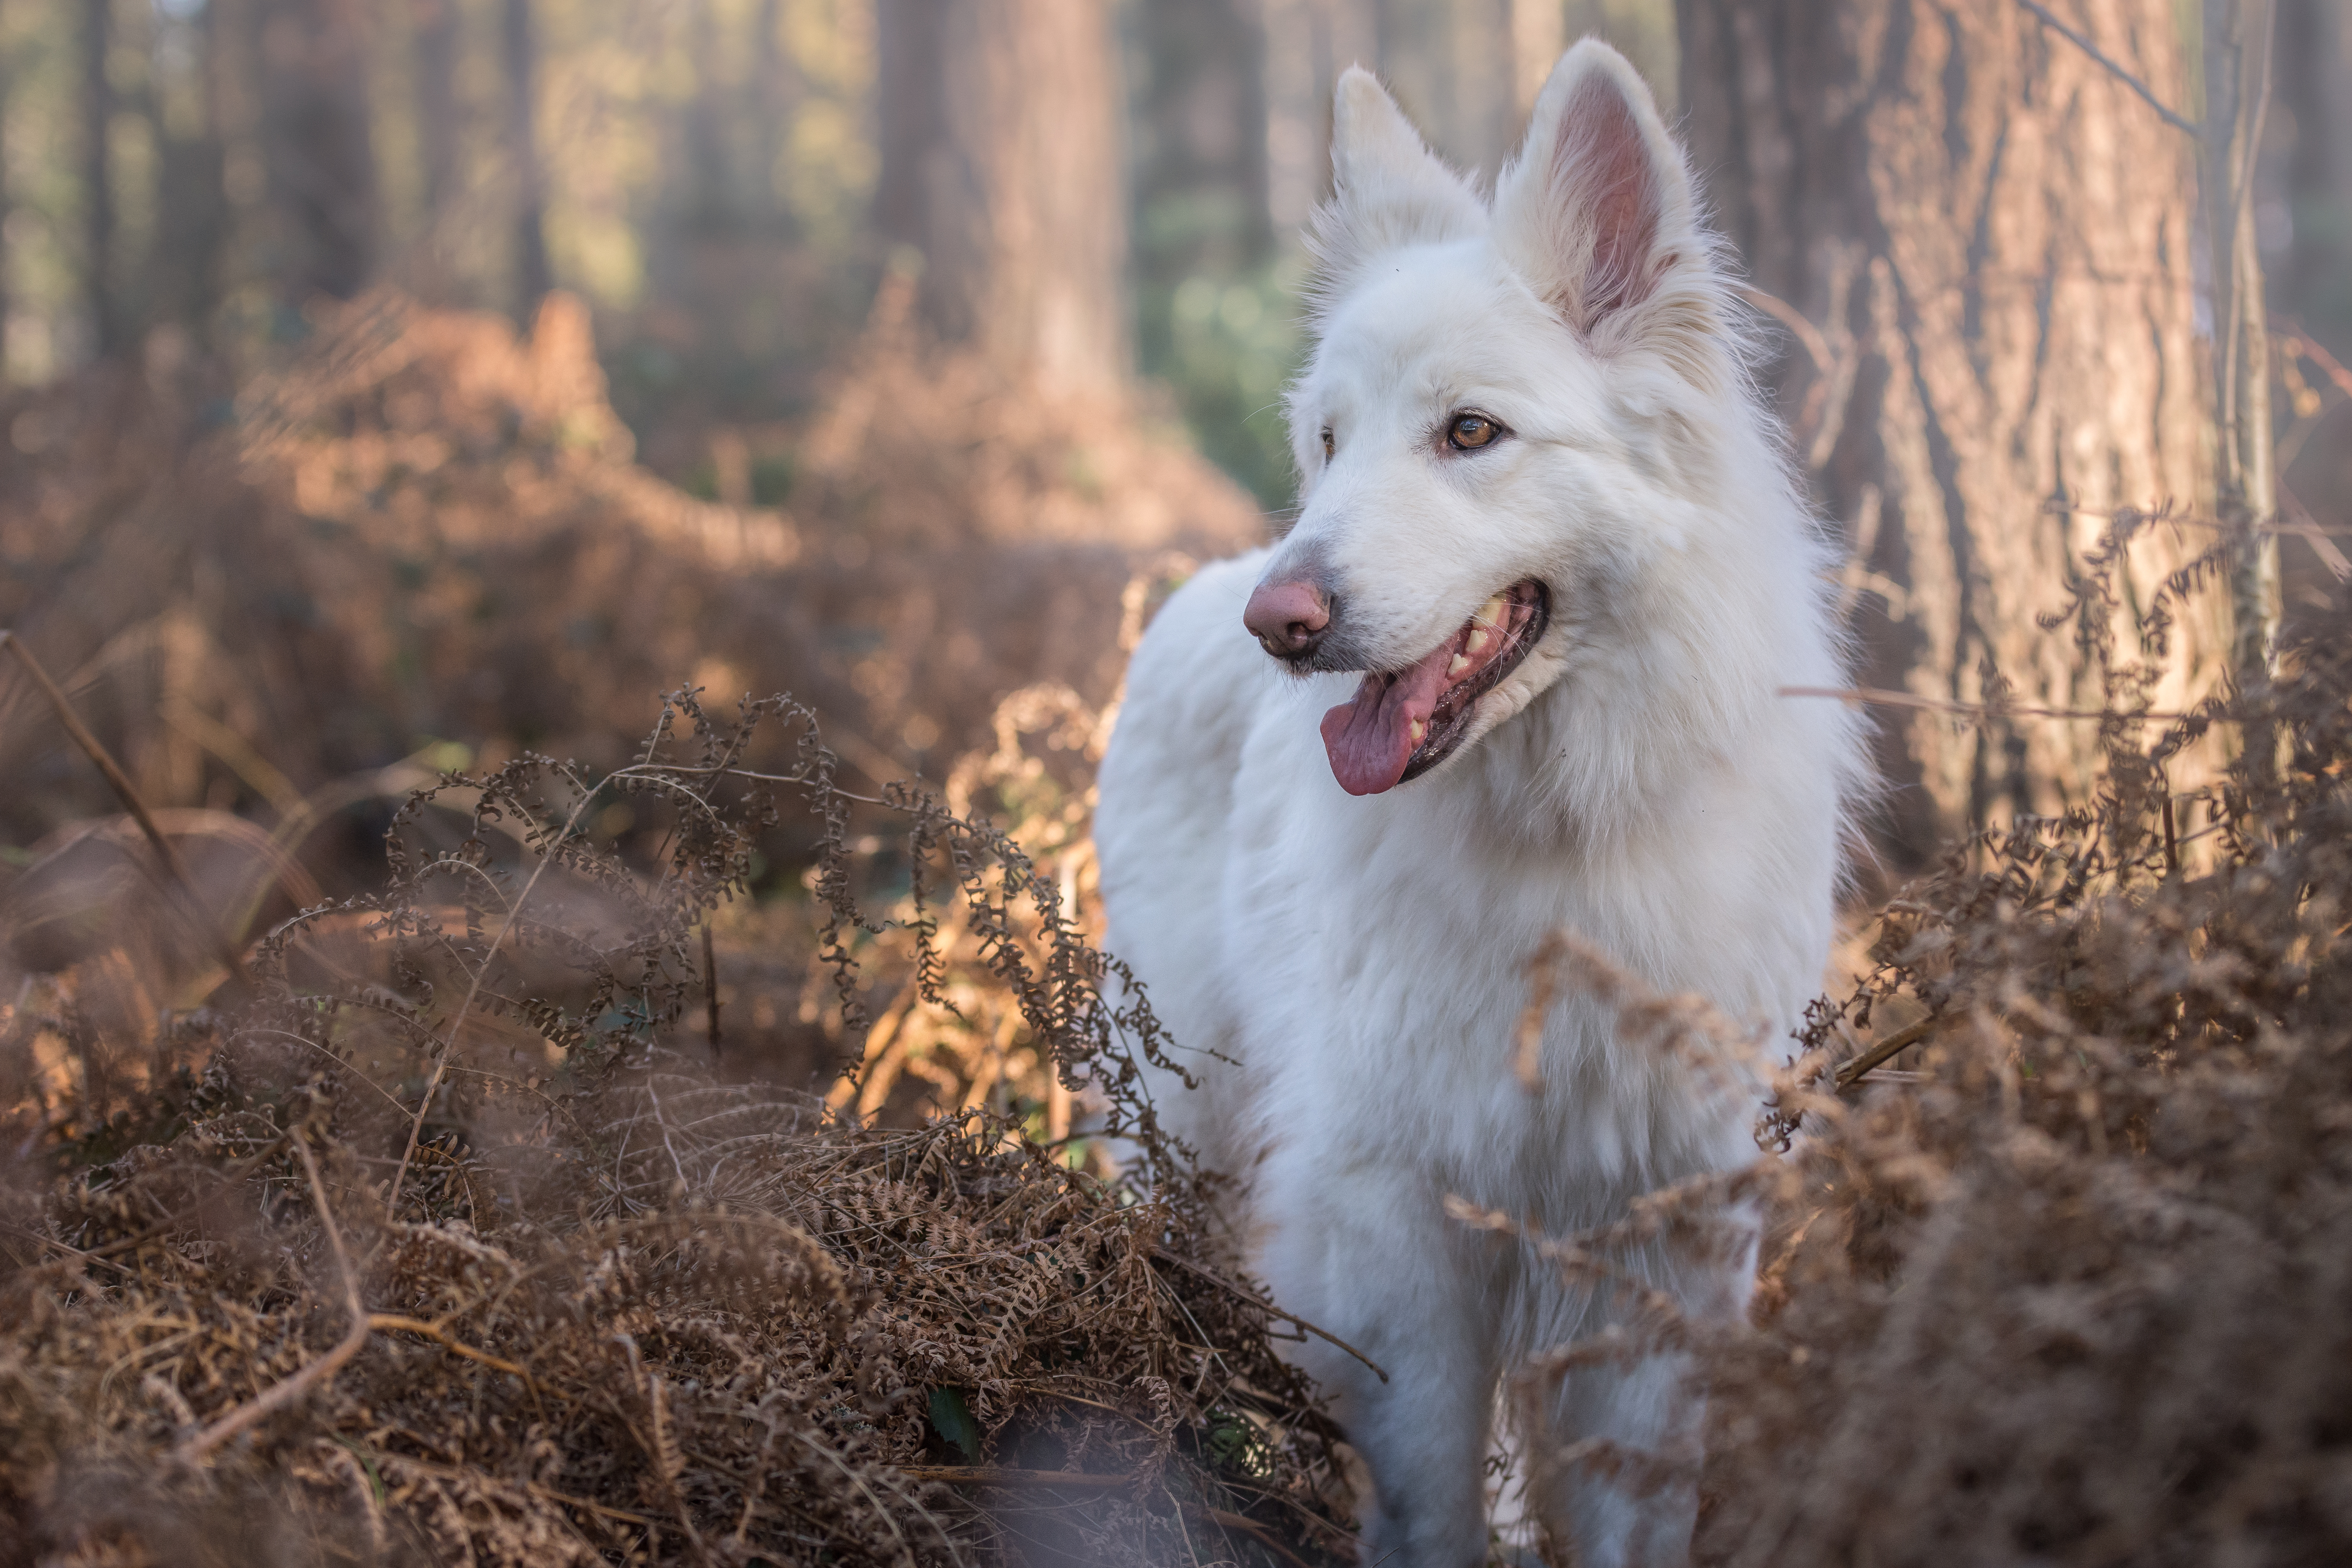 a large white dog in the forest